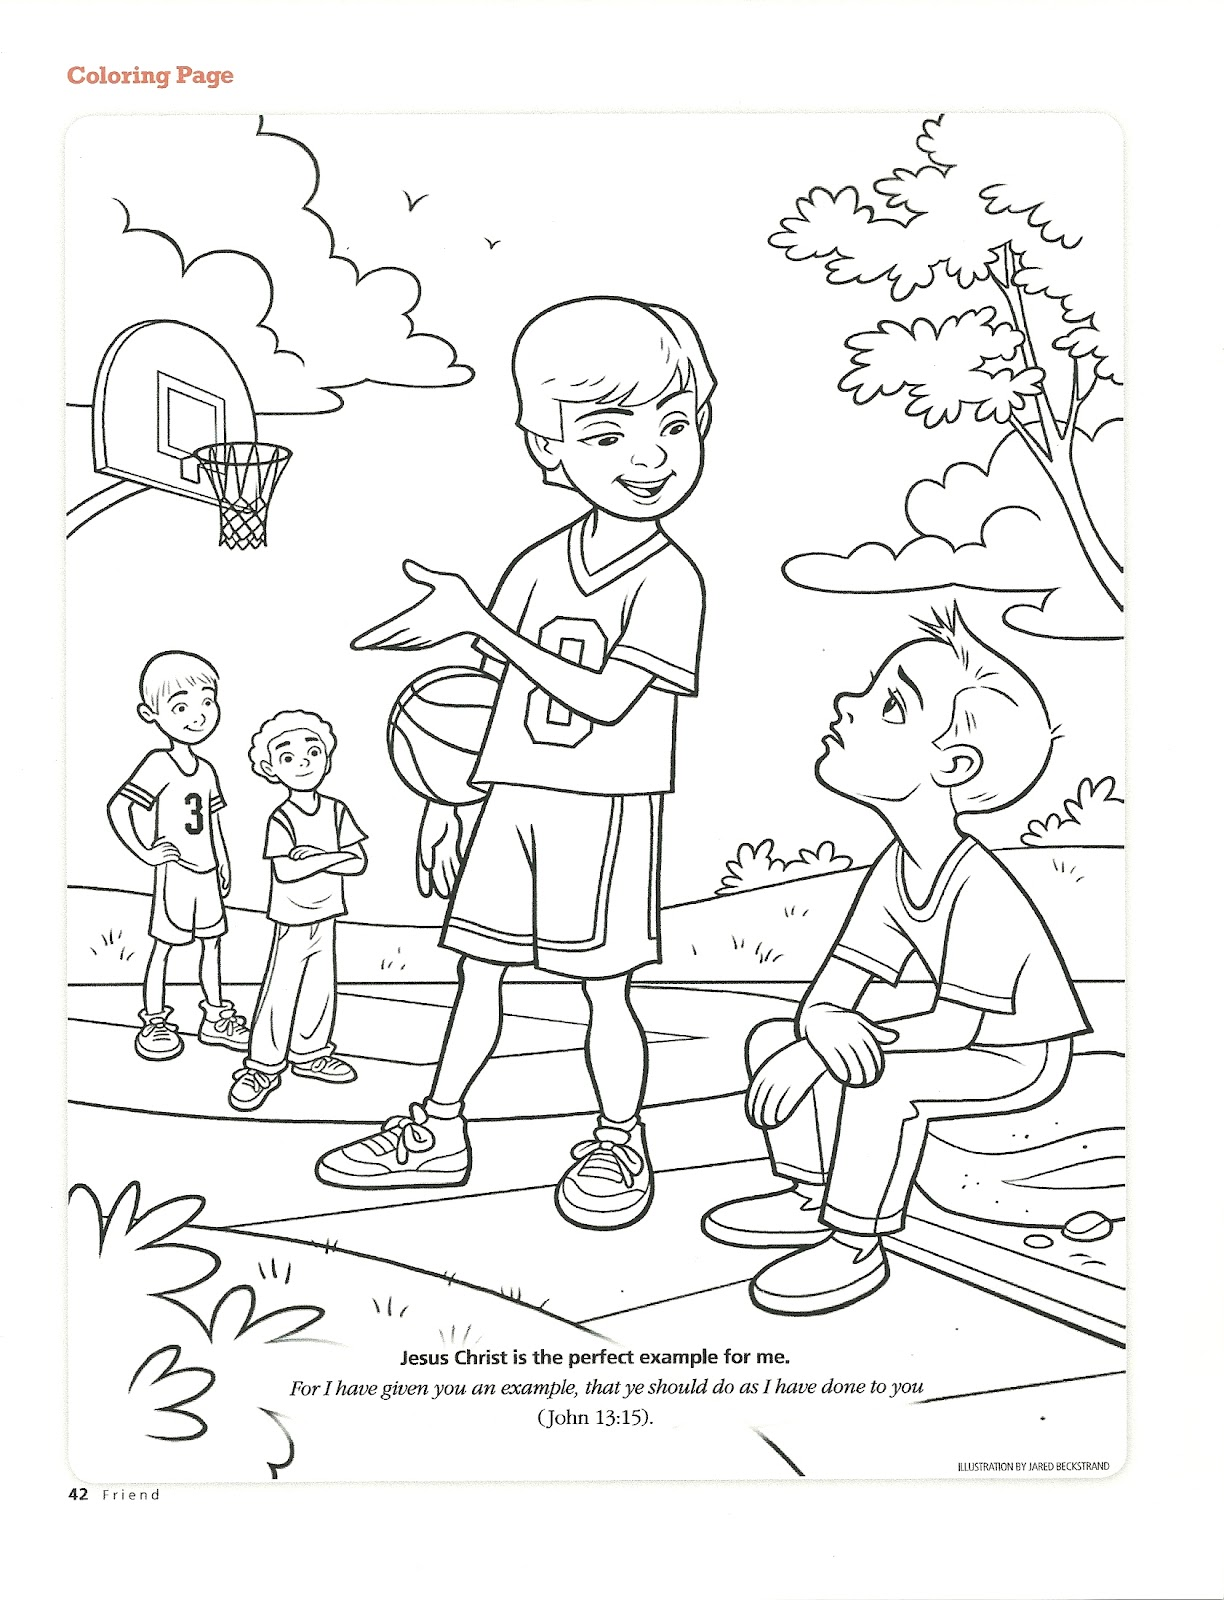 friends of jesus coloring pages - photo#21